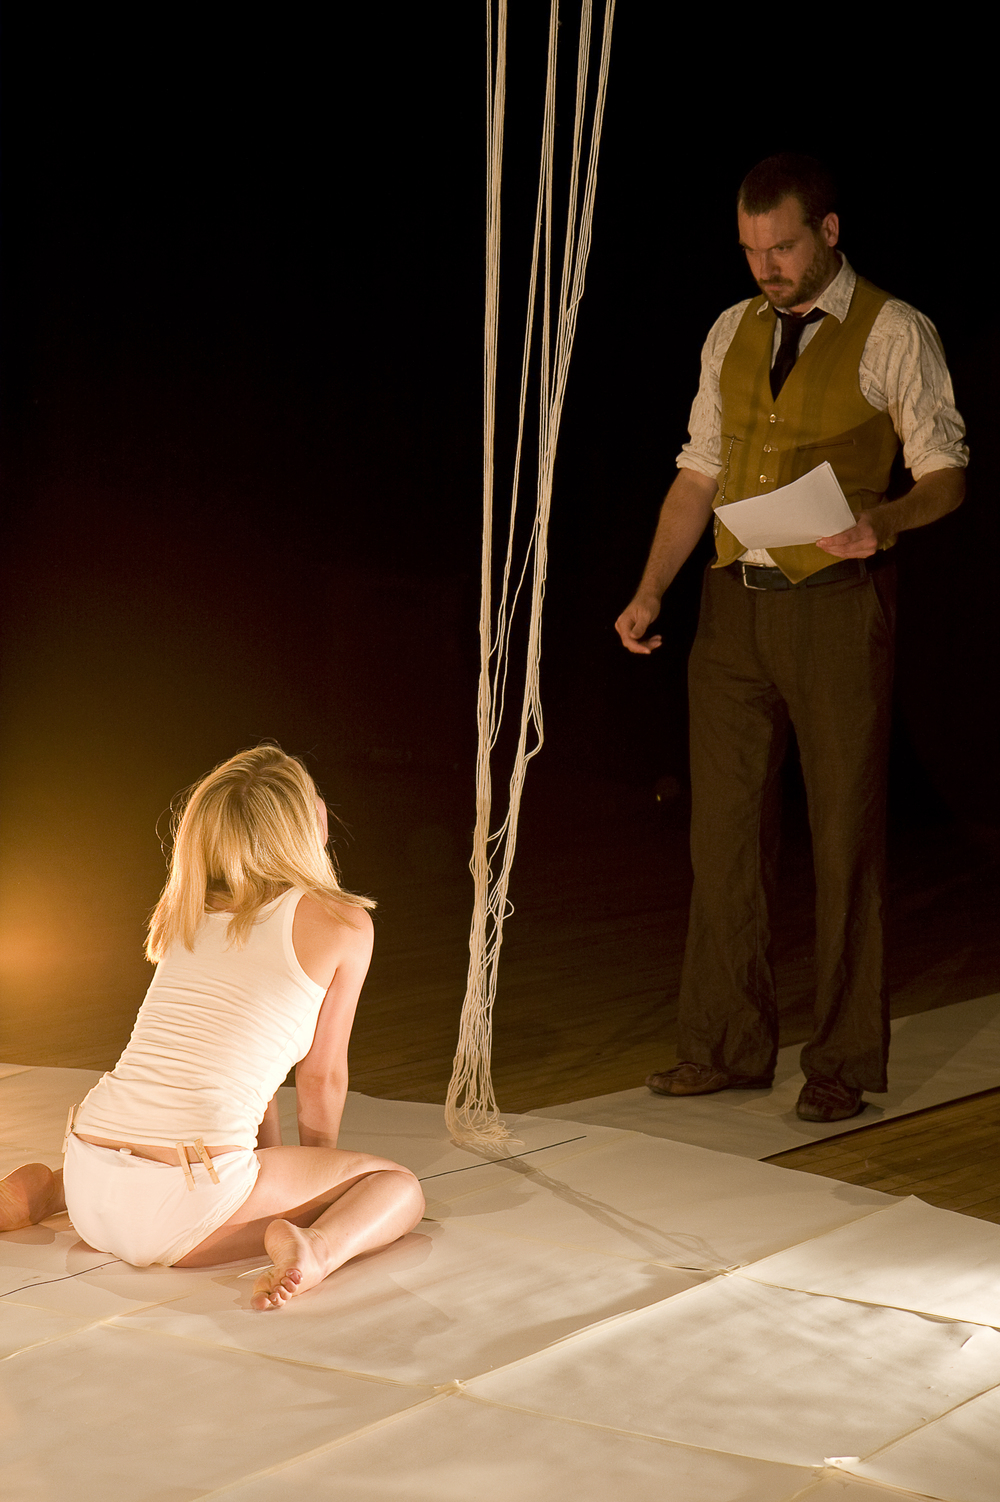 Performing as the 'father' in the autiobiographical dance-performance 'The Undress' by Han Nicholls. 2009.